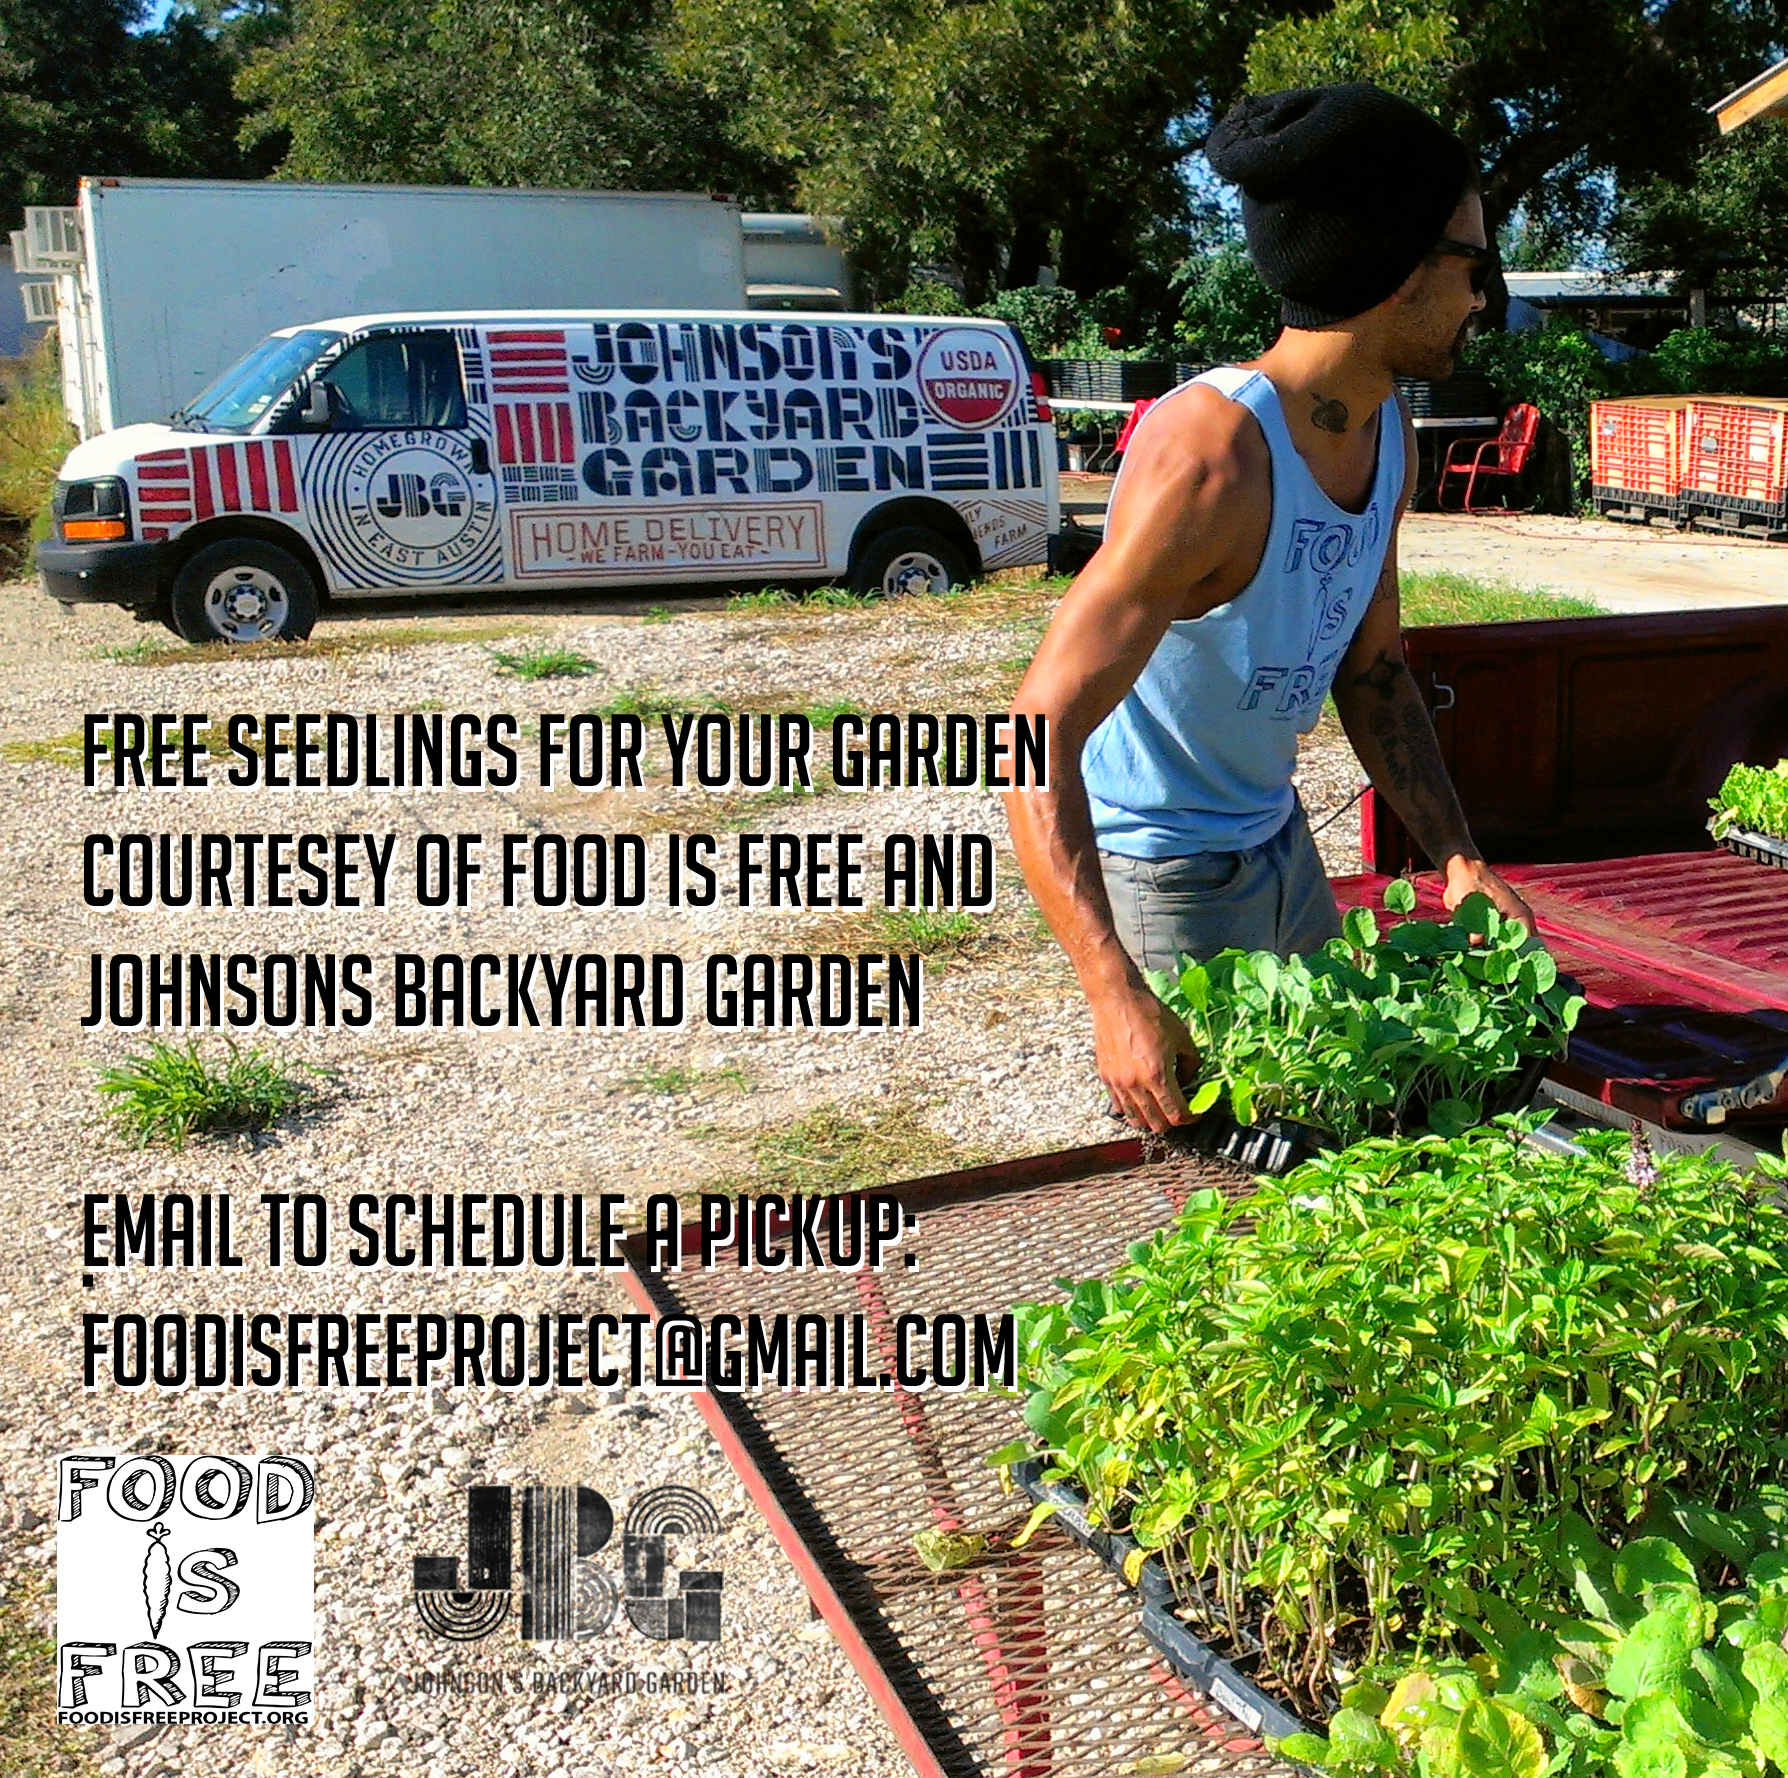 free seedlings from johnsons backyard garden food is